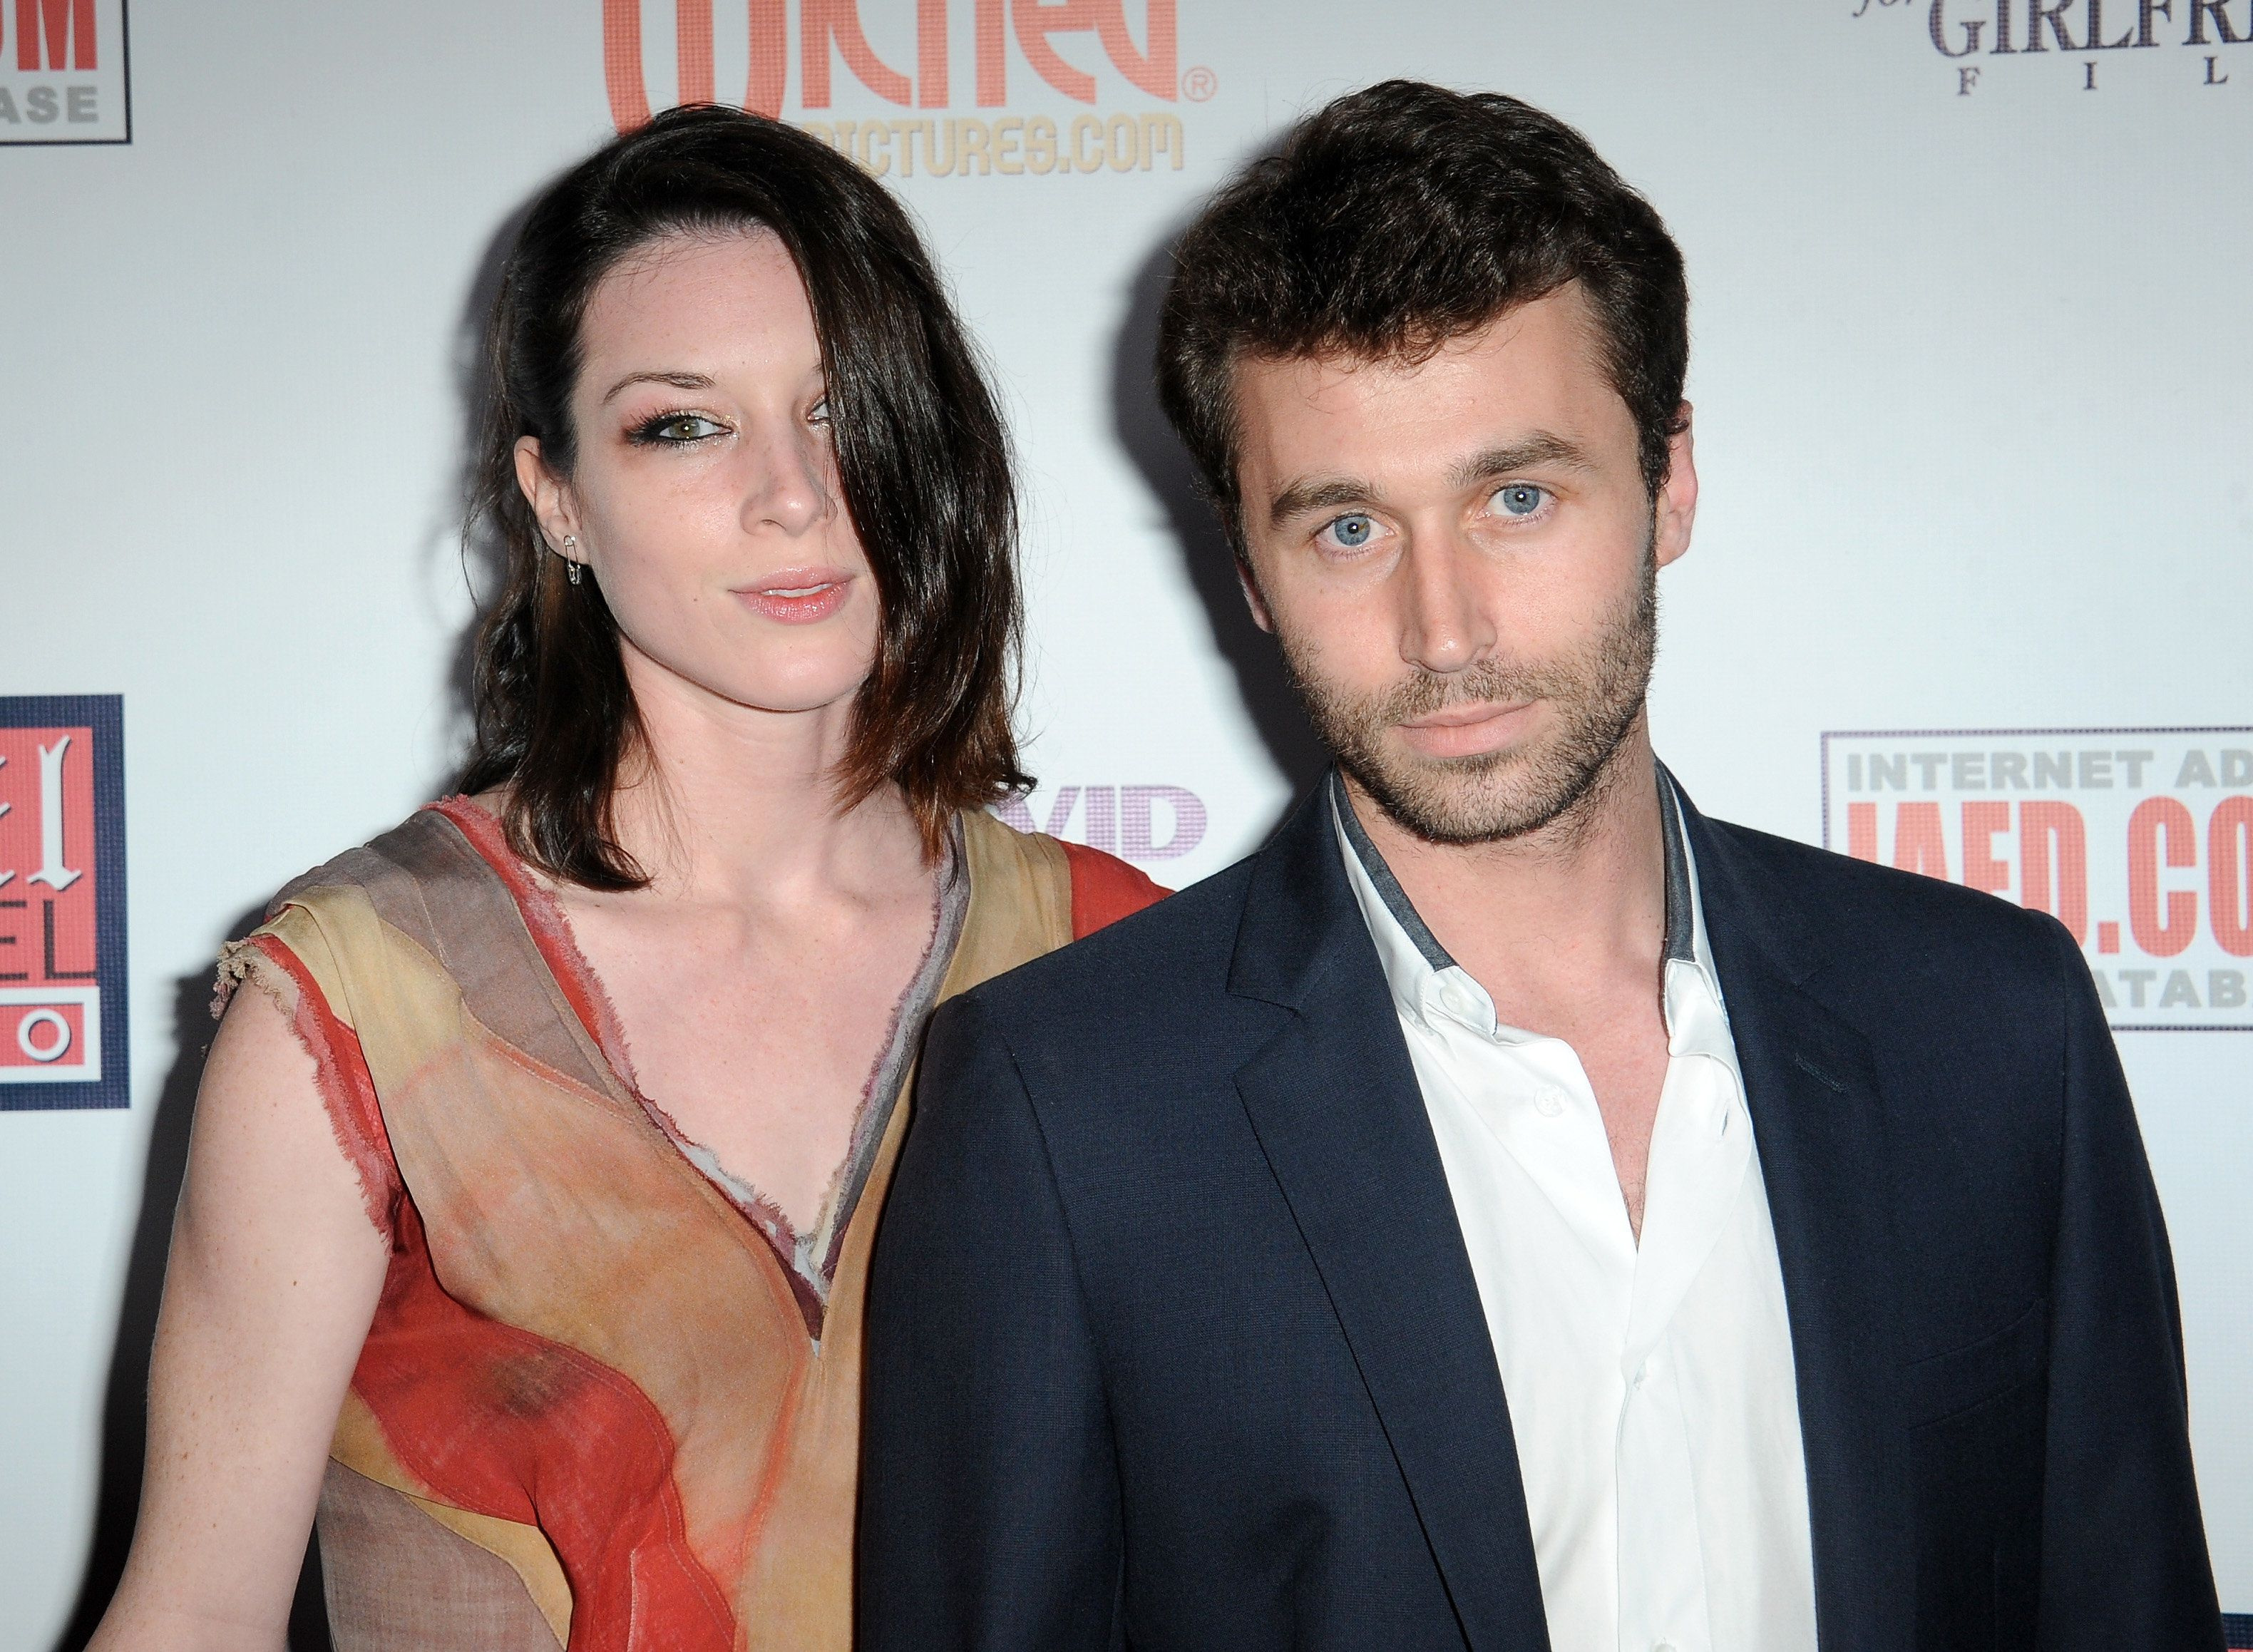 What To Know About The Sexual Assault Allegations Against James Deen Huffpost